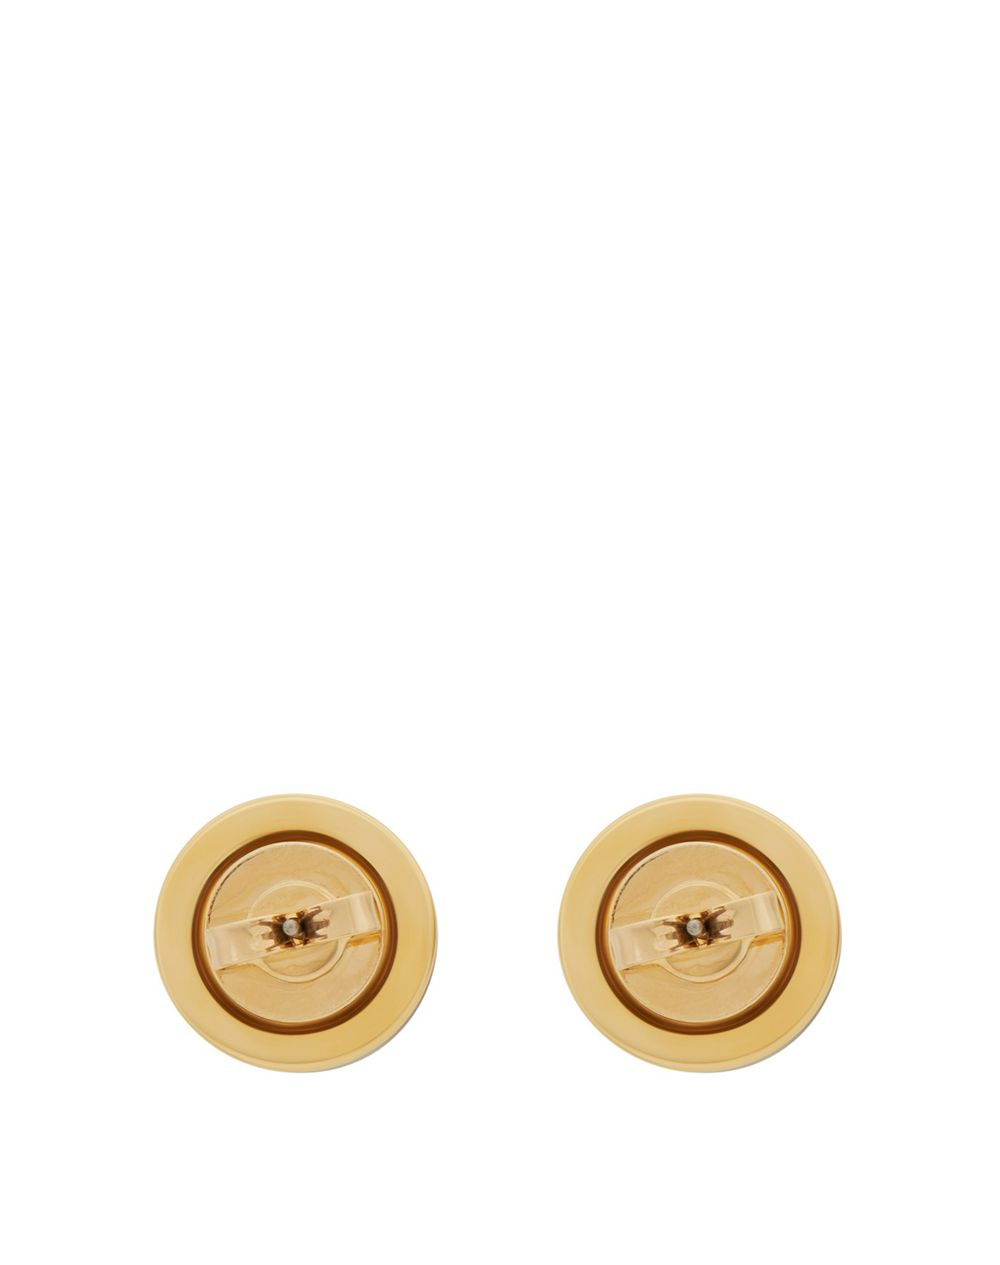 SEAL STUD EARRINGS WITH CANADIAN JADE - Lanvin